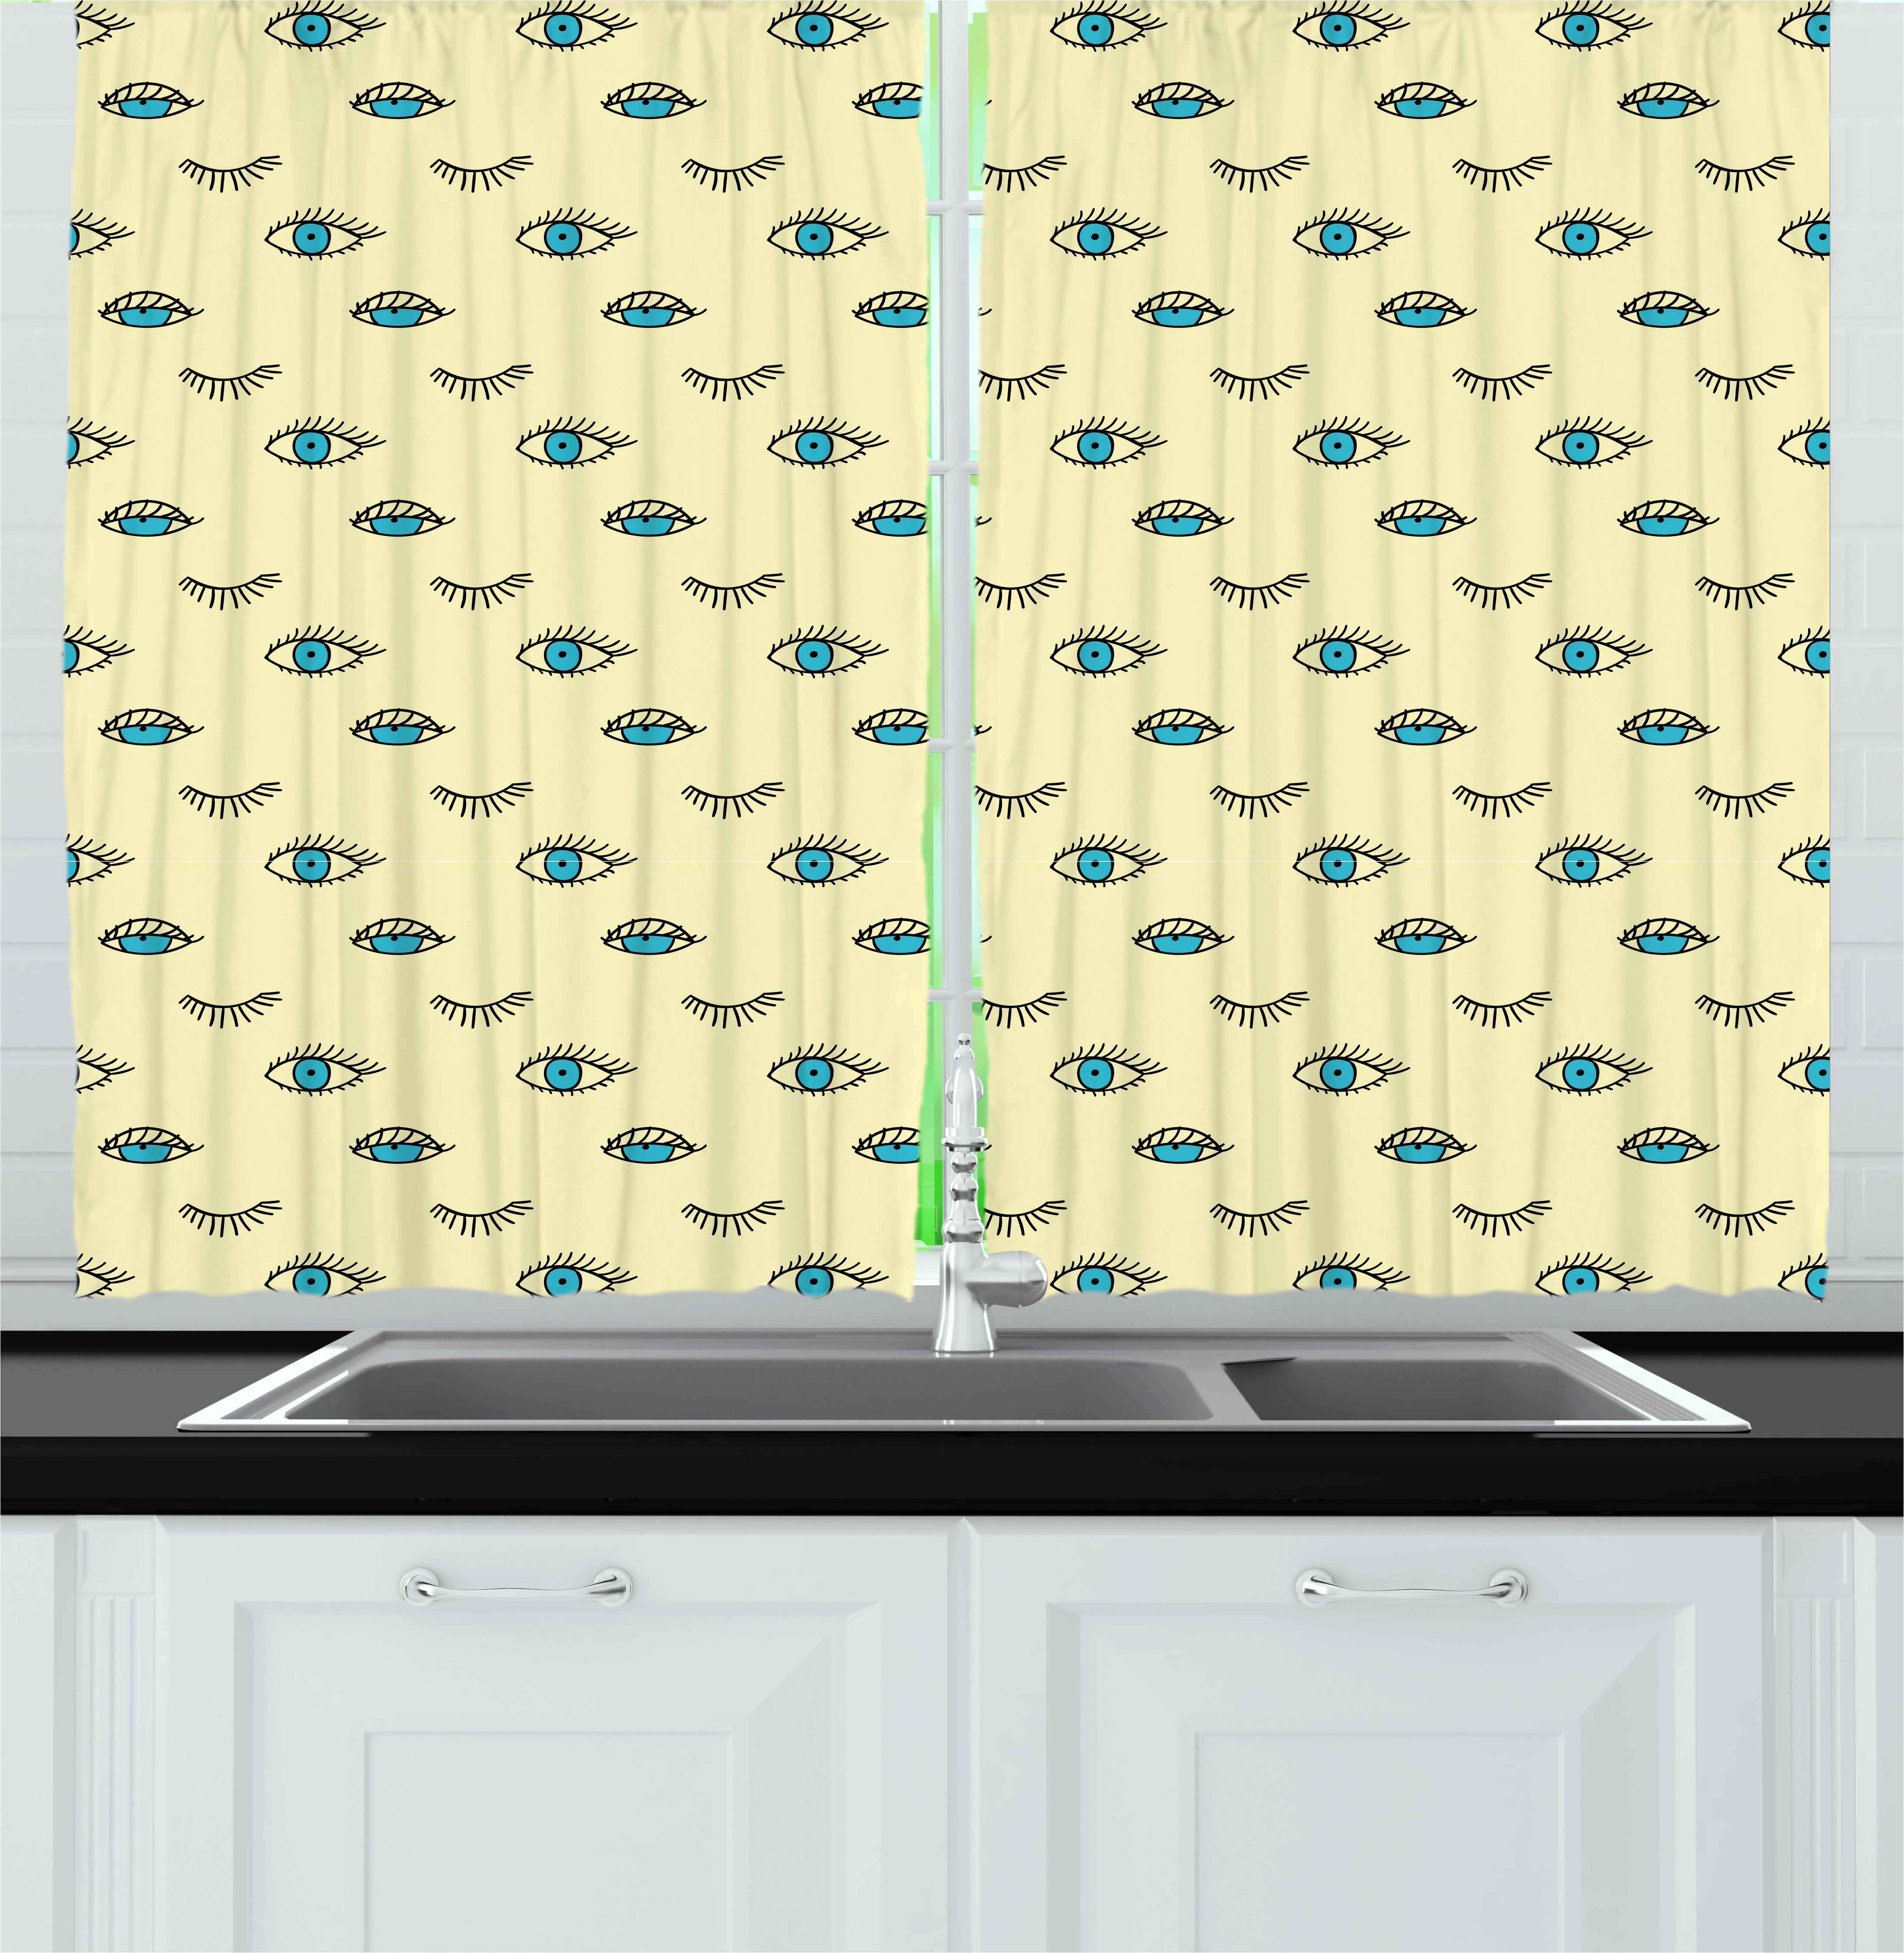 Eyelash Curtains 2 Panels Set, Simplistic Kids Drawing Style Blue Eyes with Sleepy Look Doodle Funny, Window Drapes for Living Room Bedroom, 55W X 39L Inches, Pale Yellow Blue Black, by Ambesonne